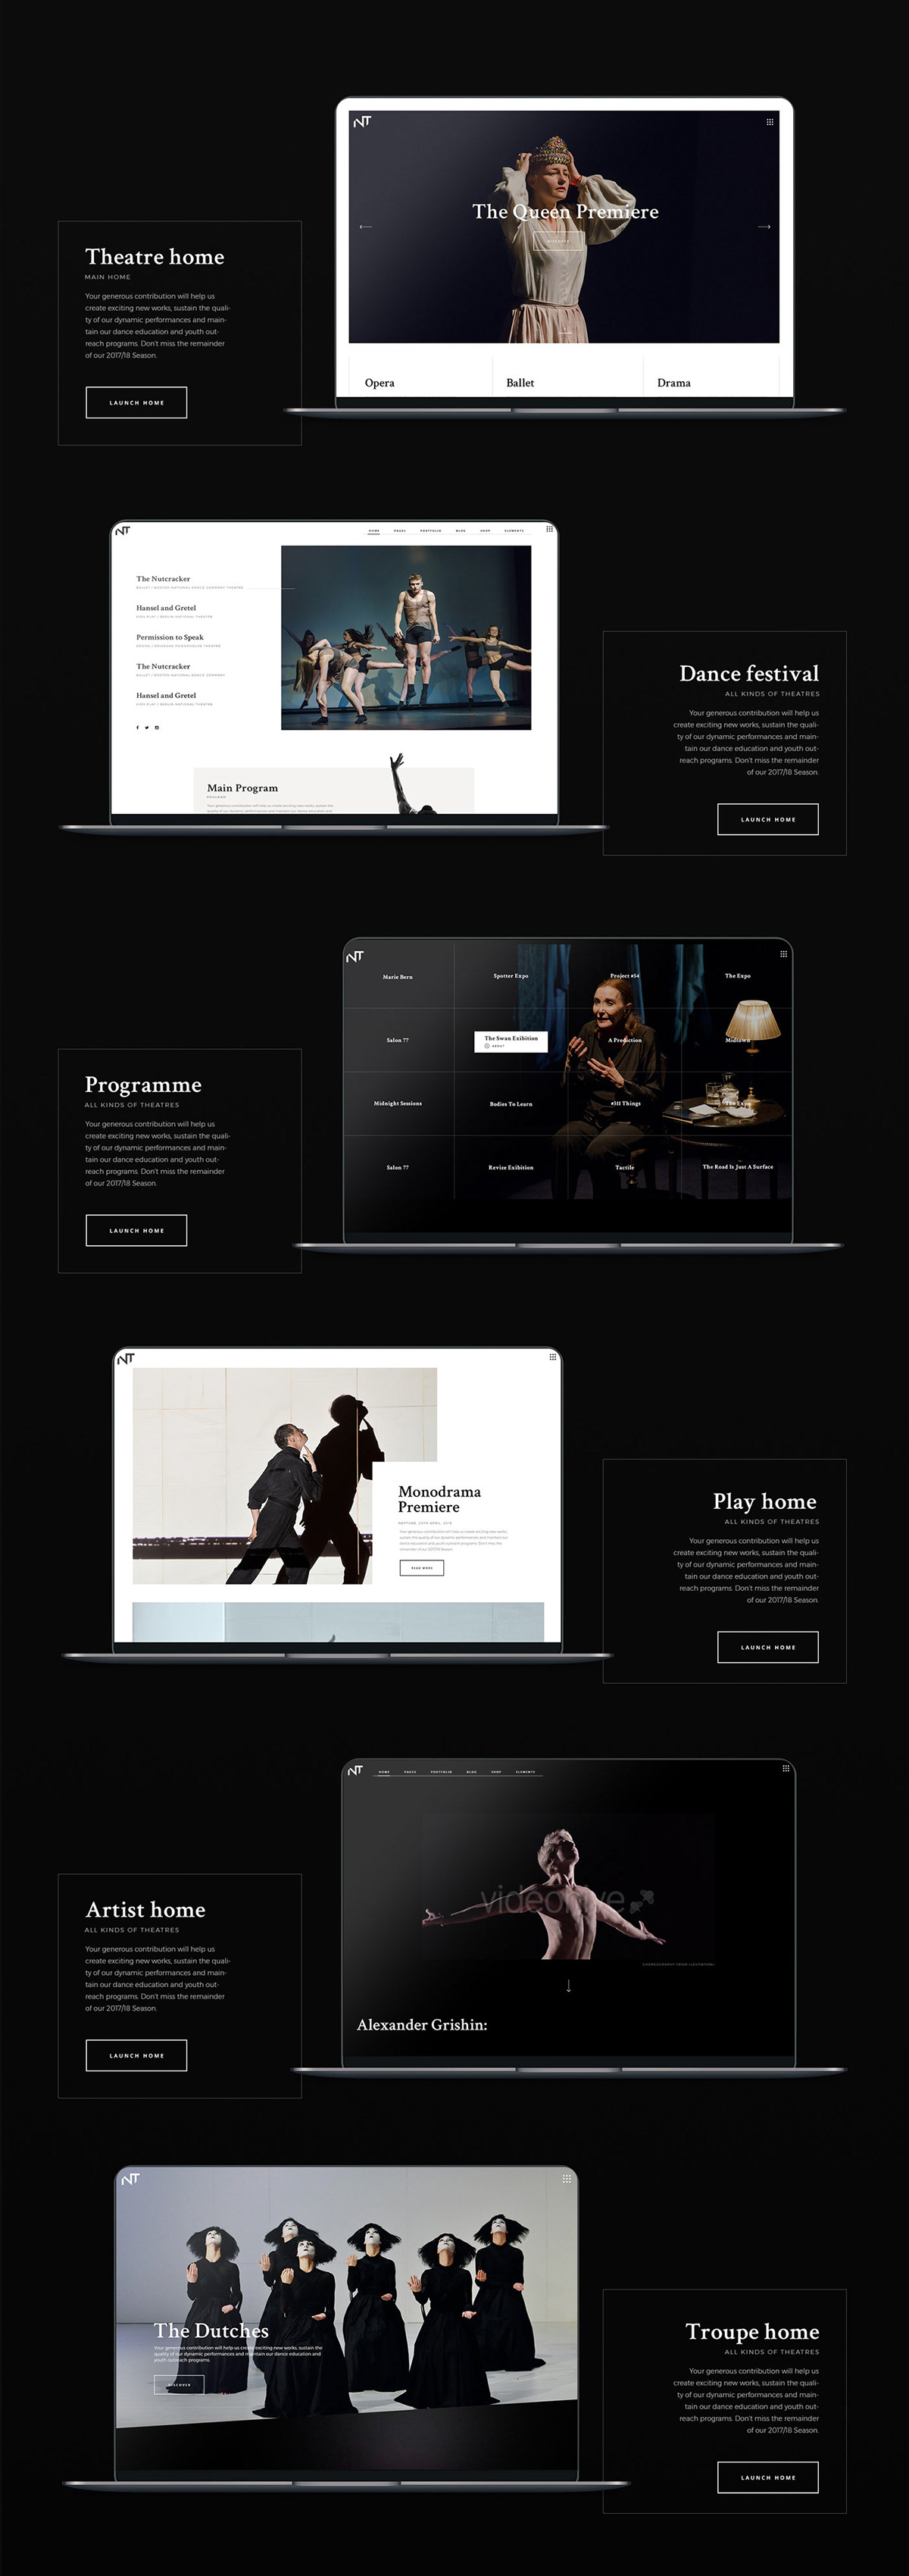 Bard - A Theatre and Performing Arts Theme